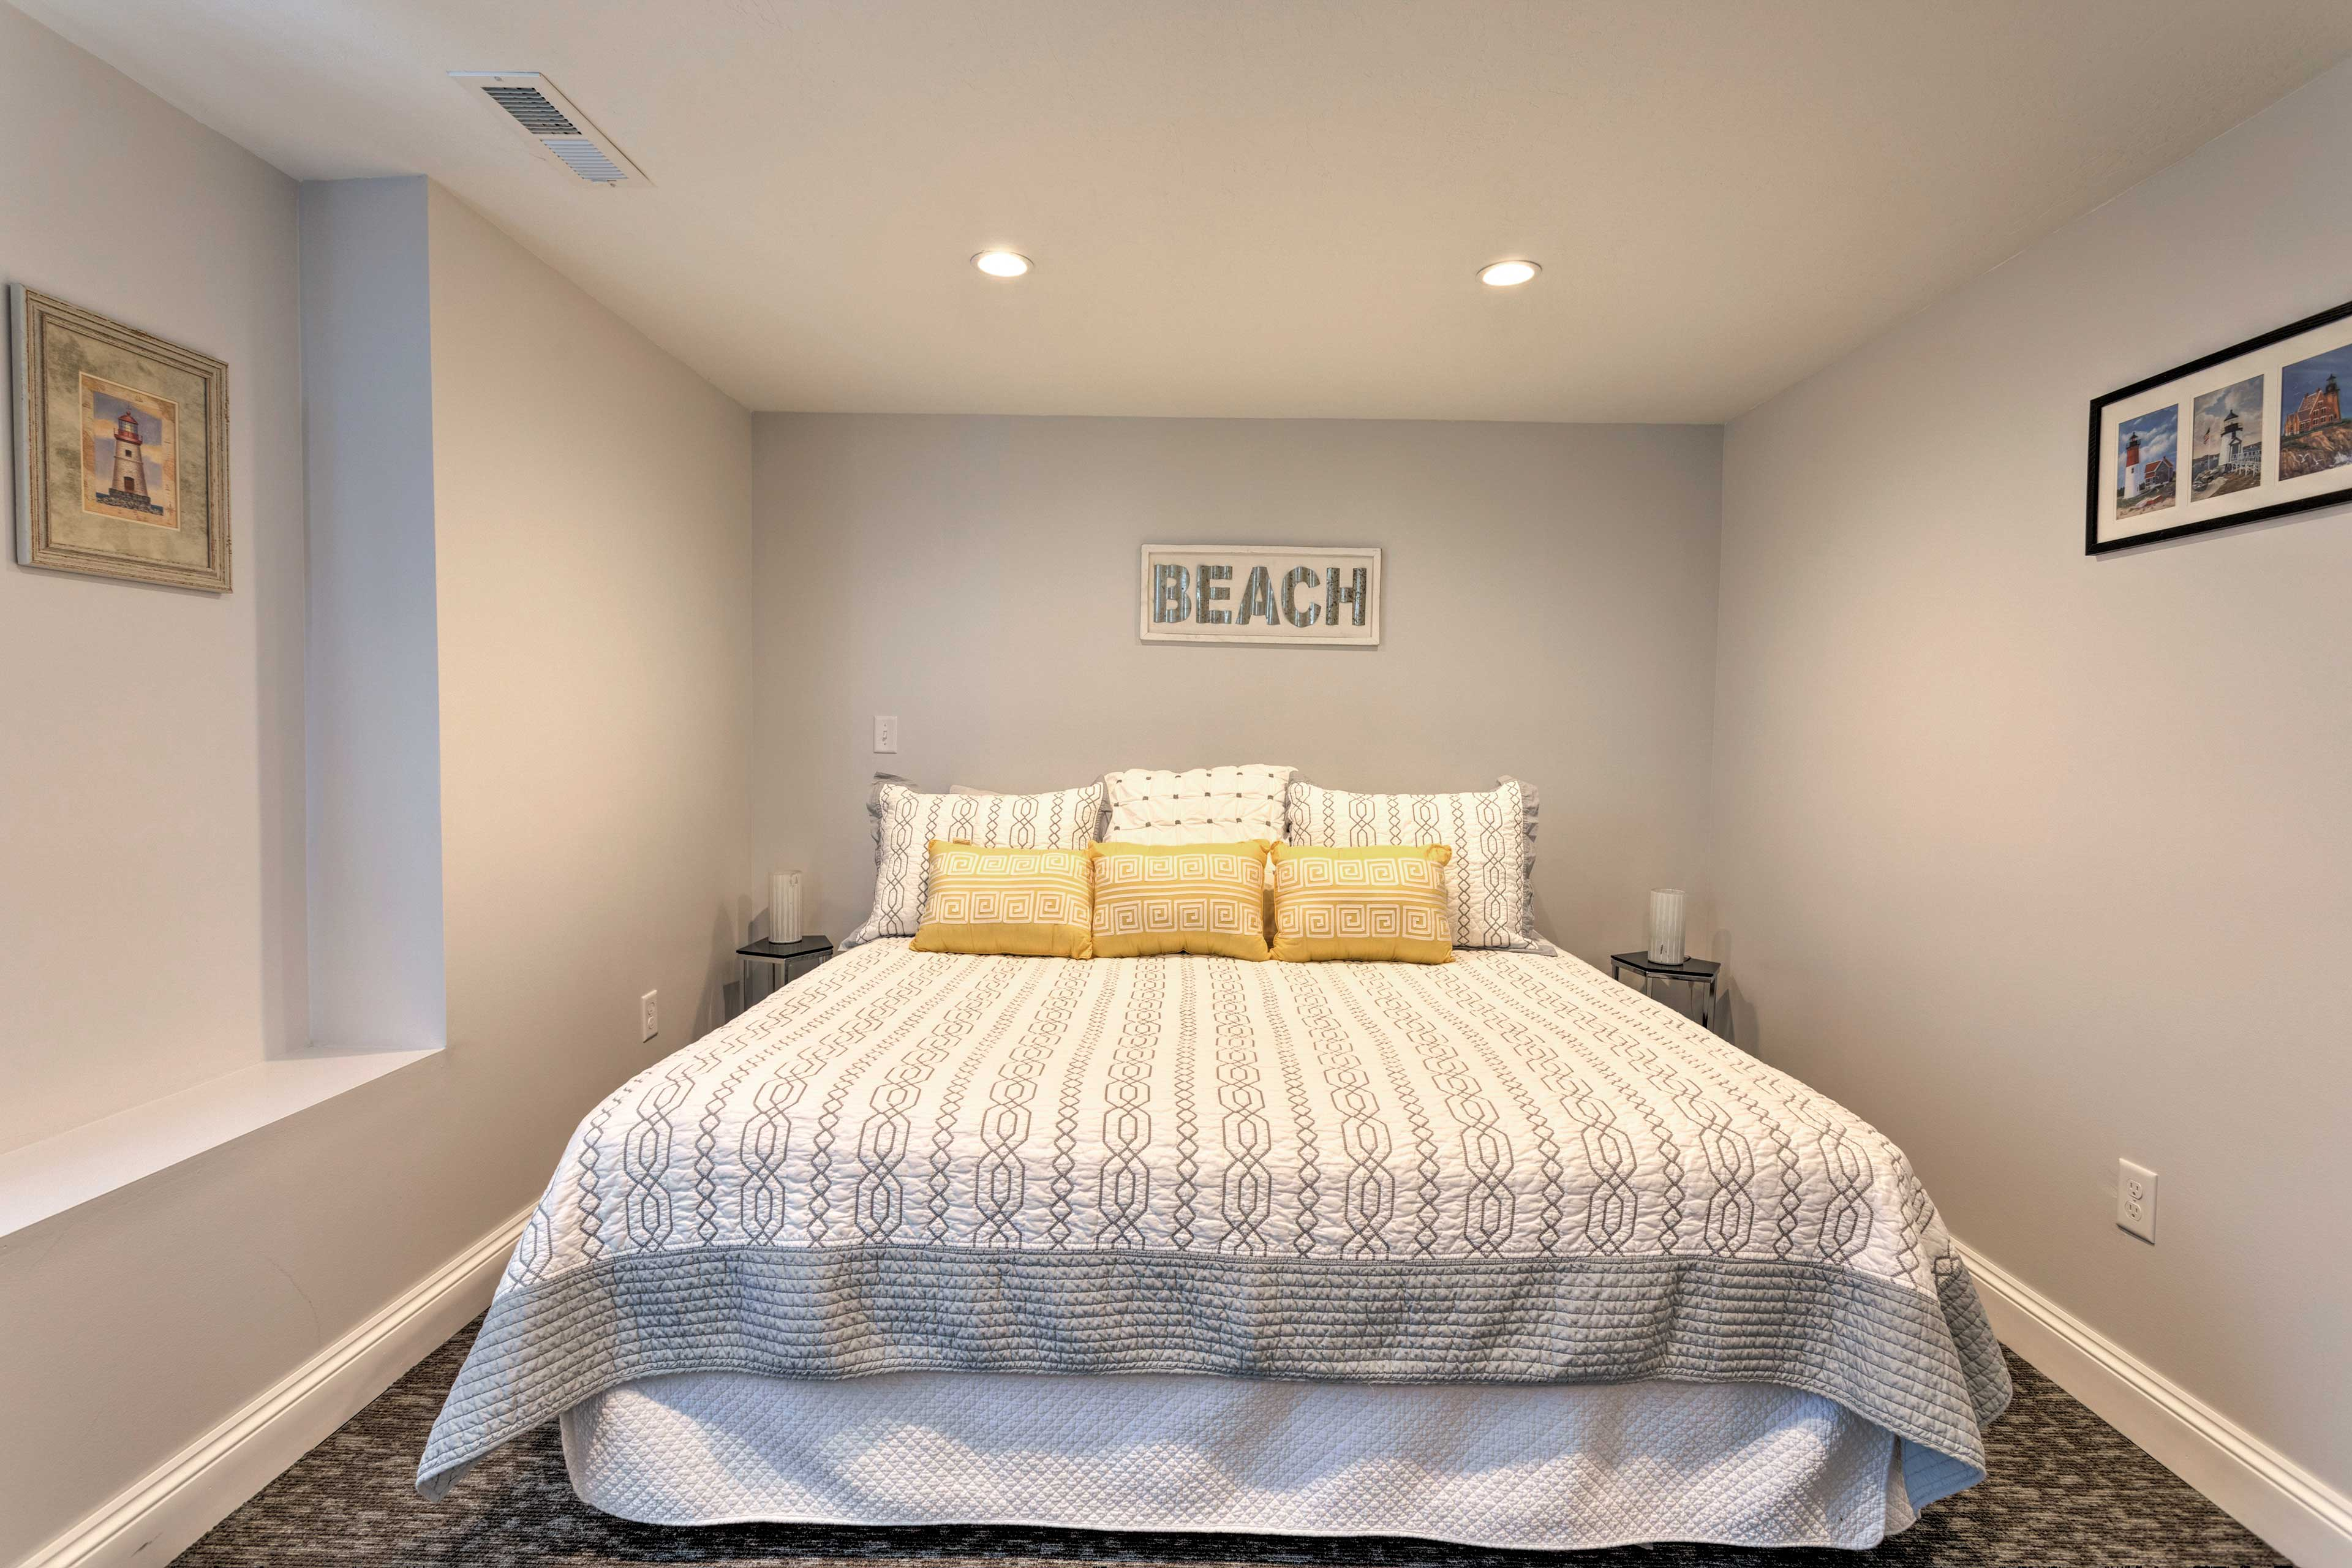 Dream of the beach when you sleep in this bed.